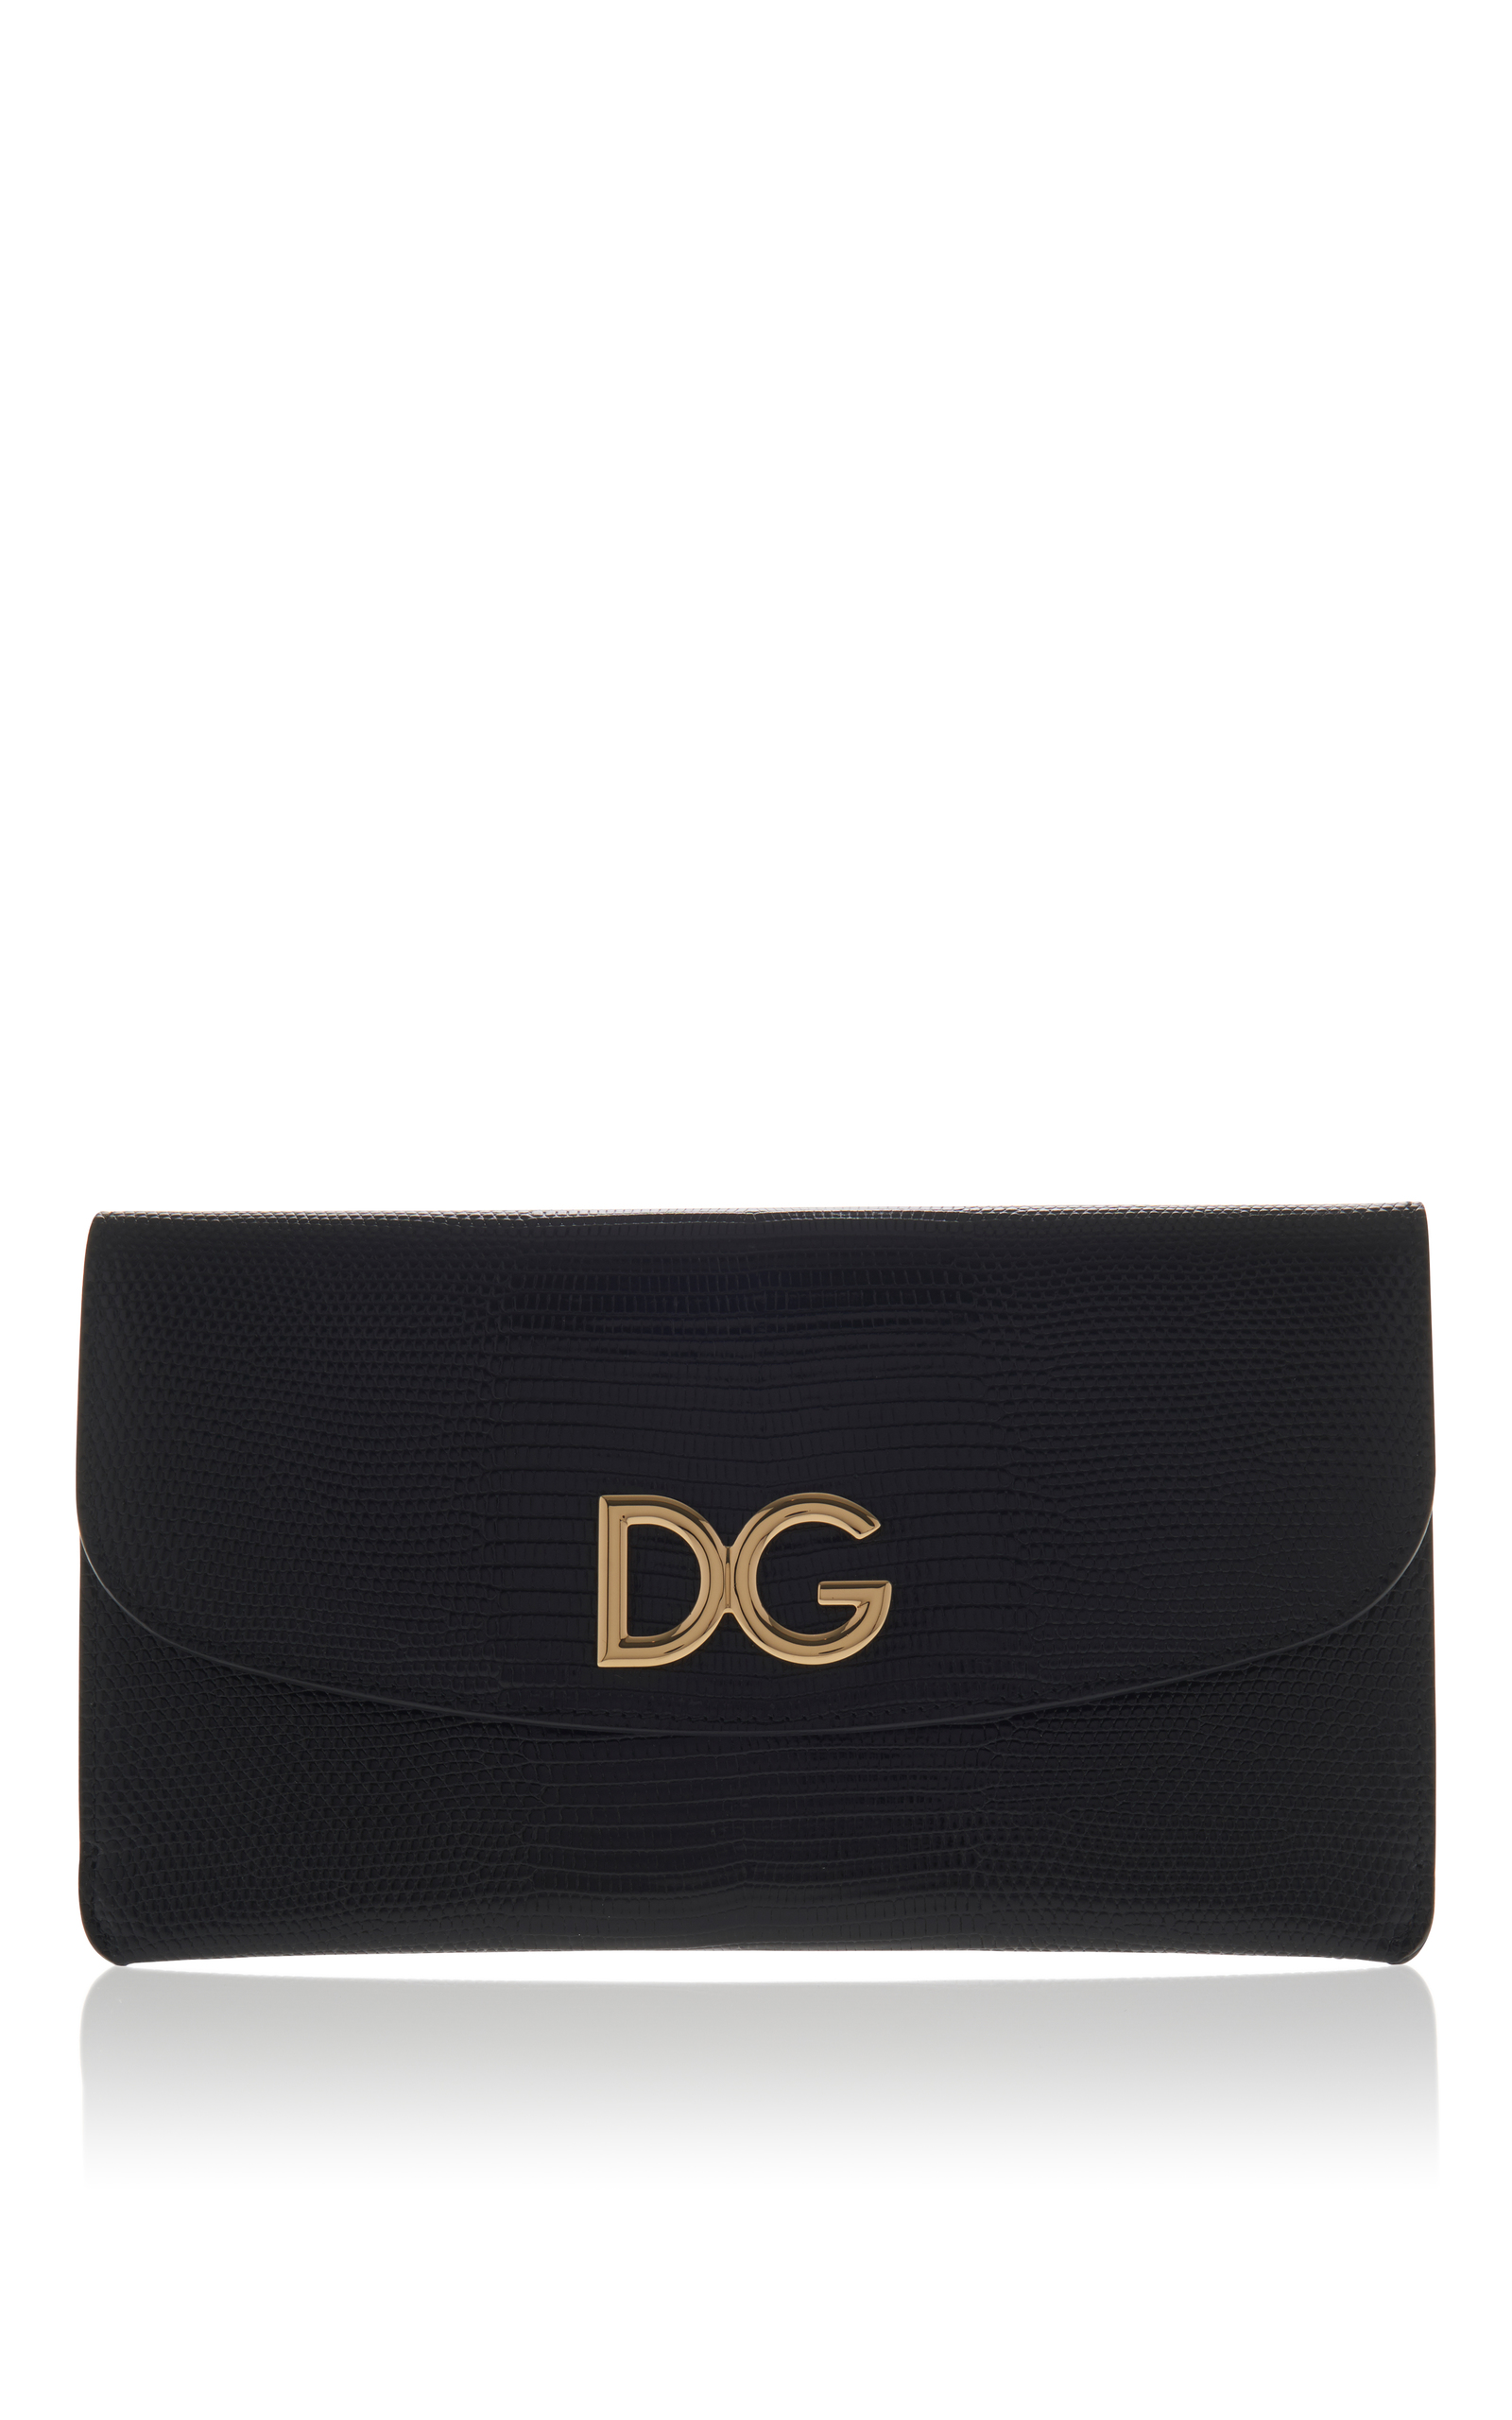 fold out purse - Black Dolce & Gabbana Outlet Comfortable Purchase Discount Genuine Fake Cheap Price rTZ3LOB